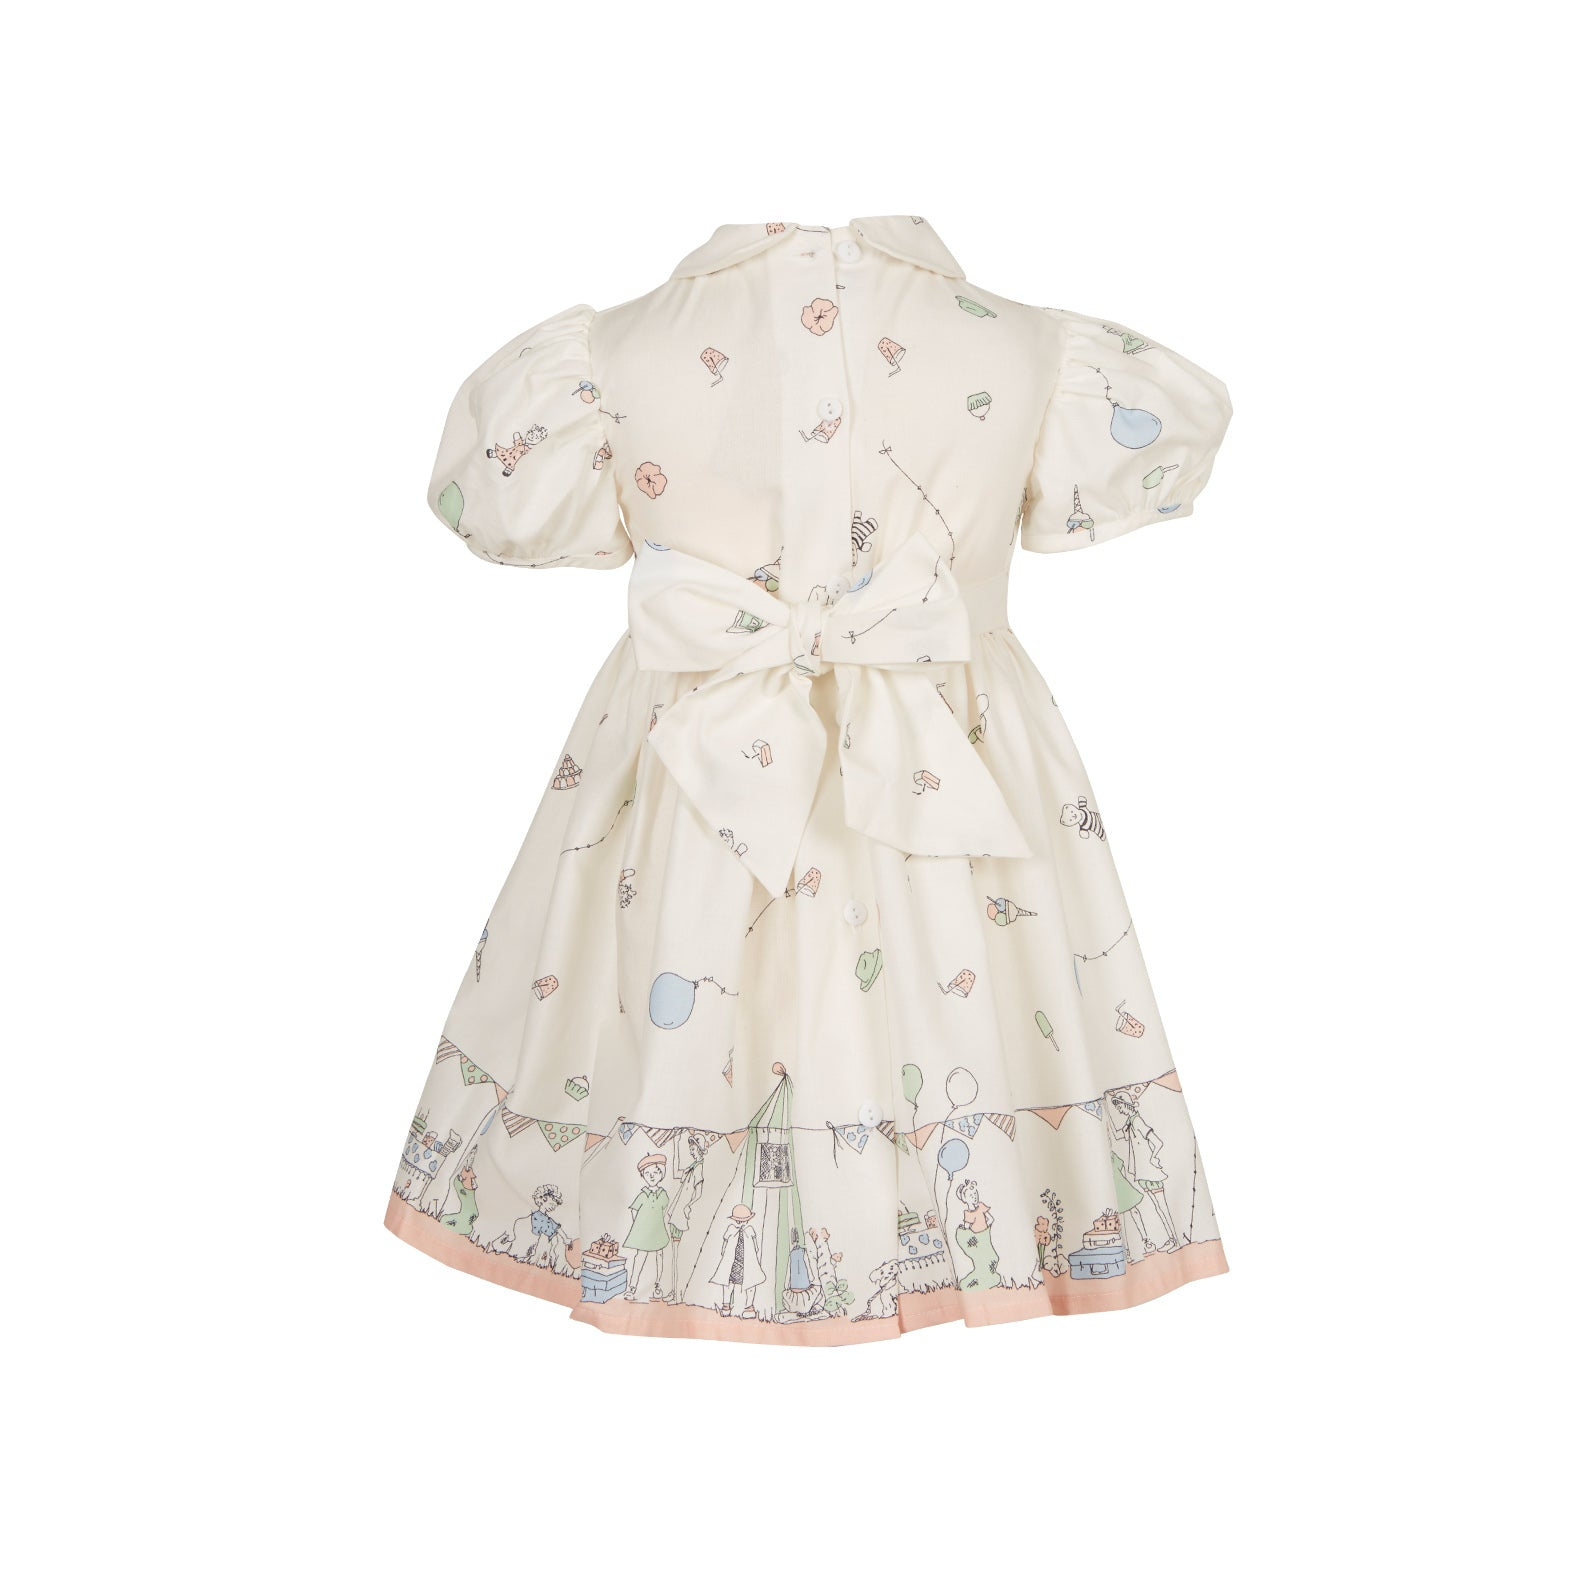 Archive sale - Alice dress - Birthday bash cream pink